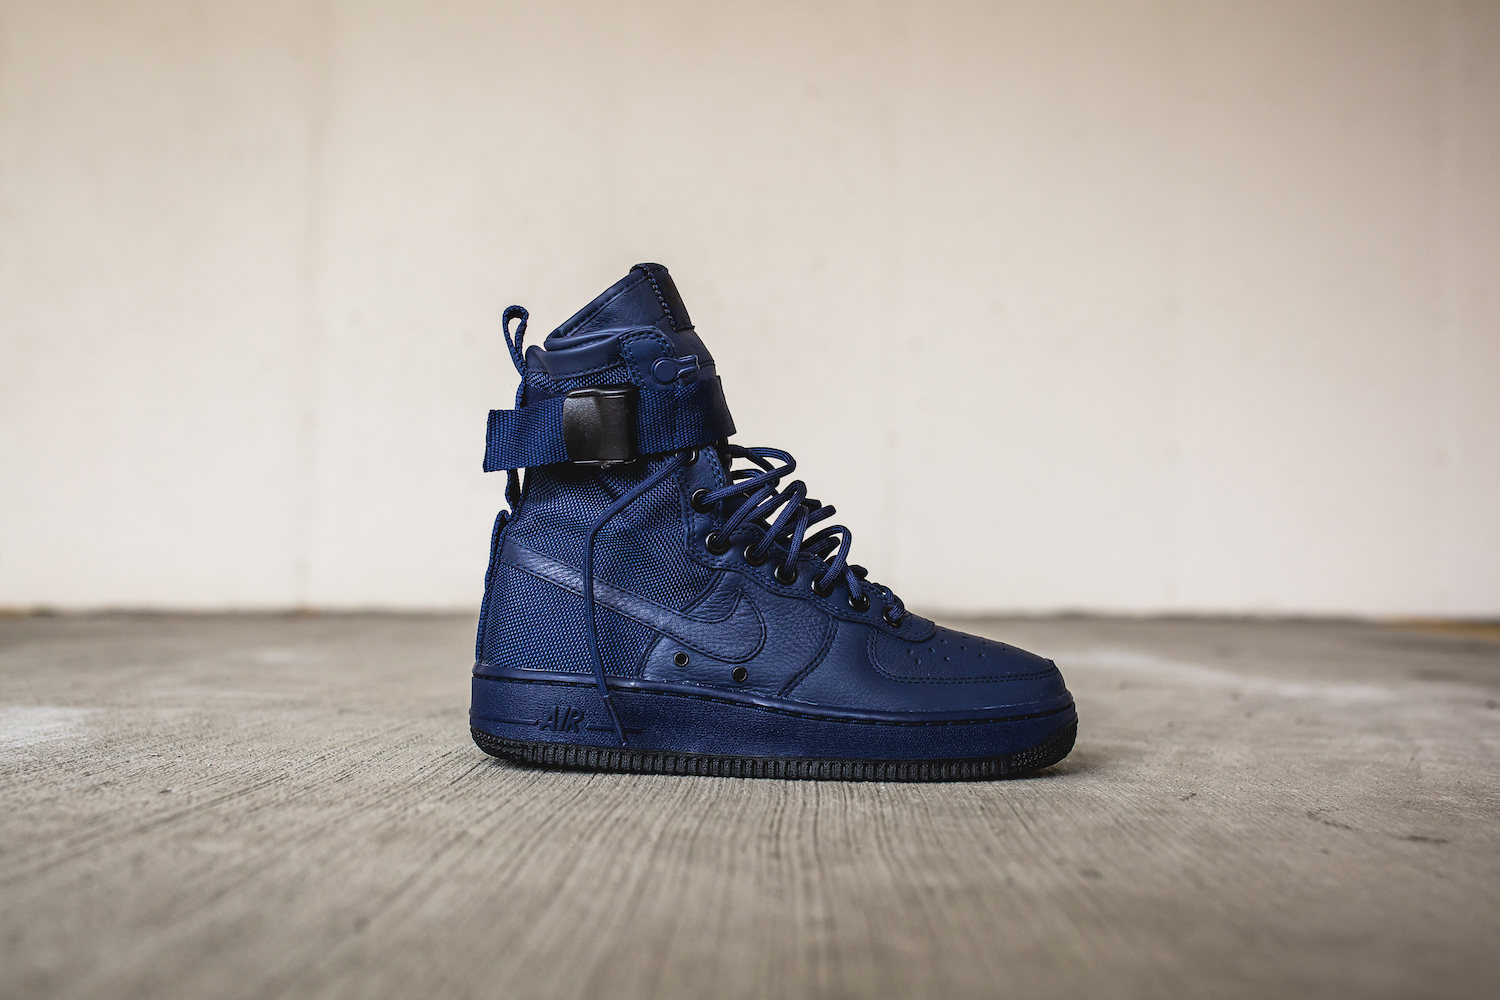 pretty nice a1f36 f6802 The Nike WMNS SF AF1 'Binary Blue' Arrives Tomorrow ...